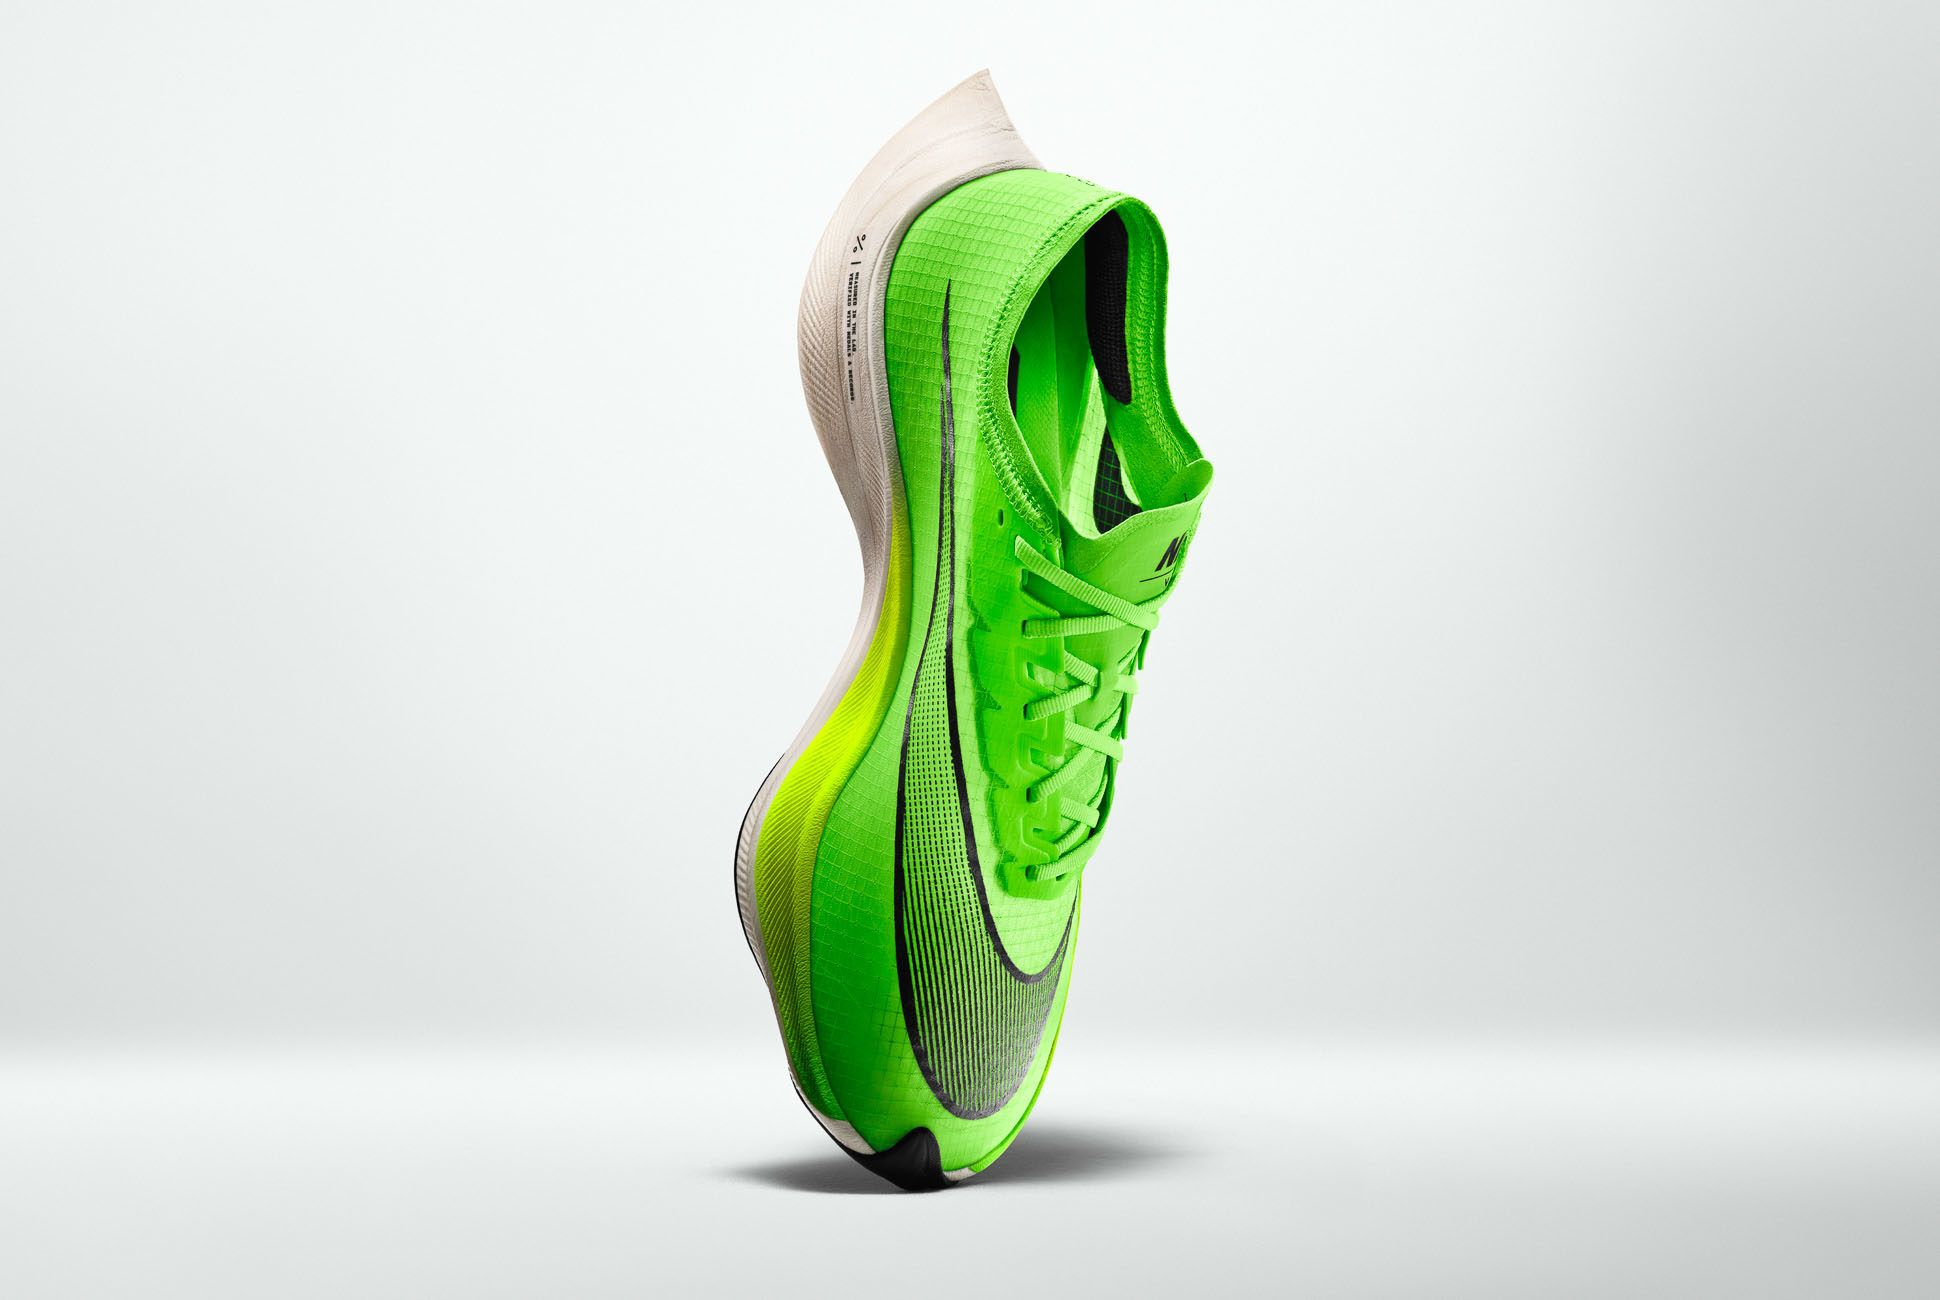 Nike S Fastest Shoe Is Back In Stock Get It While You Can Nike Running Shoe Reviews Sneakers